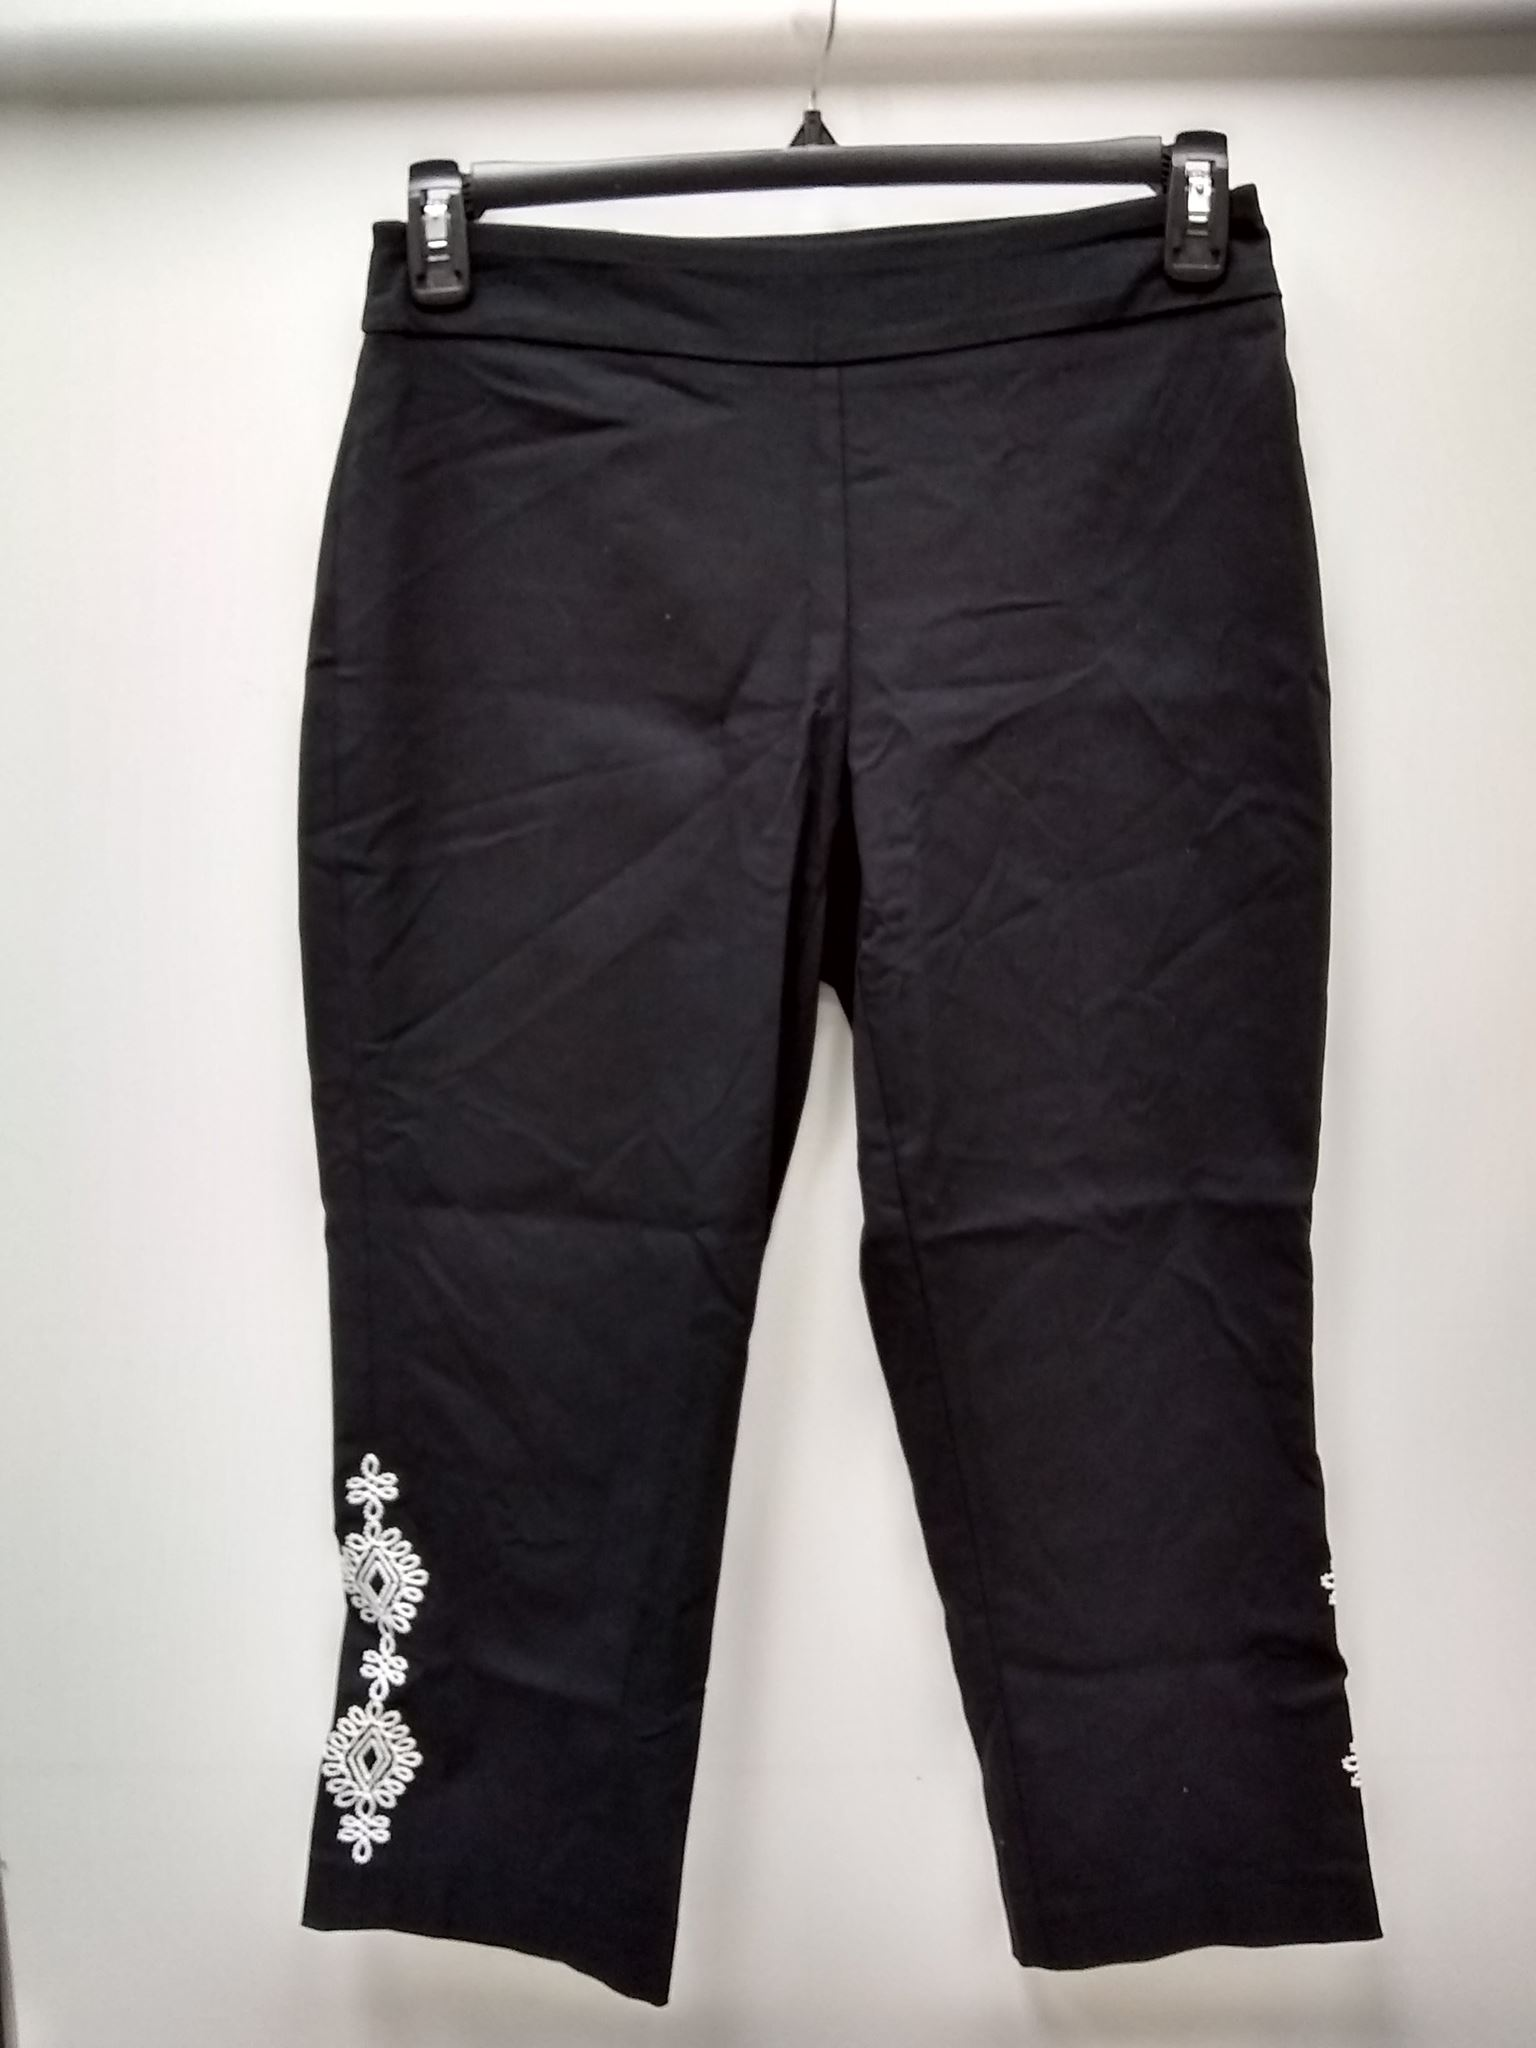 094849a62149e JM Collection Embroidered Capri Pants Deep Black S 887650644729